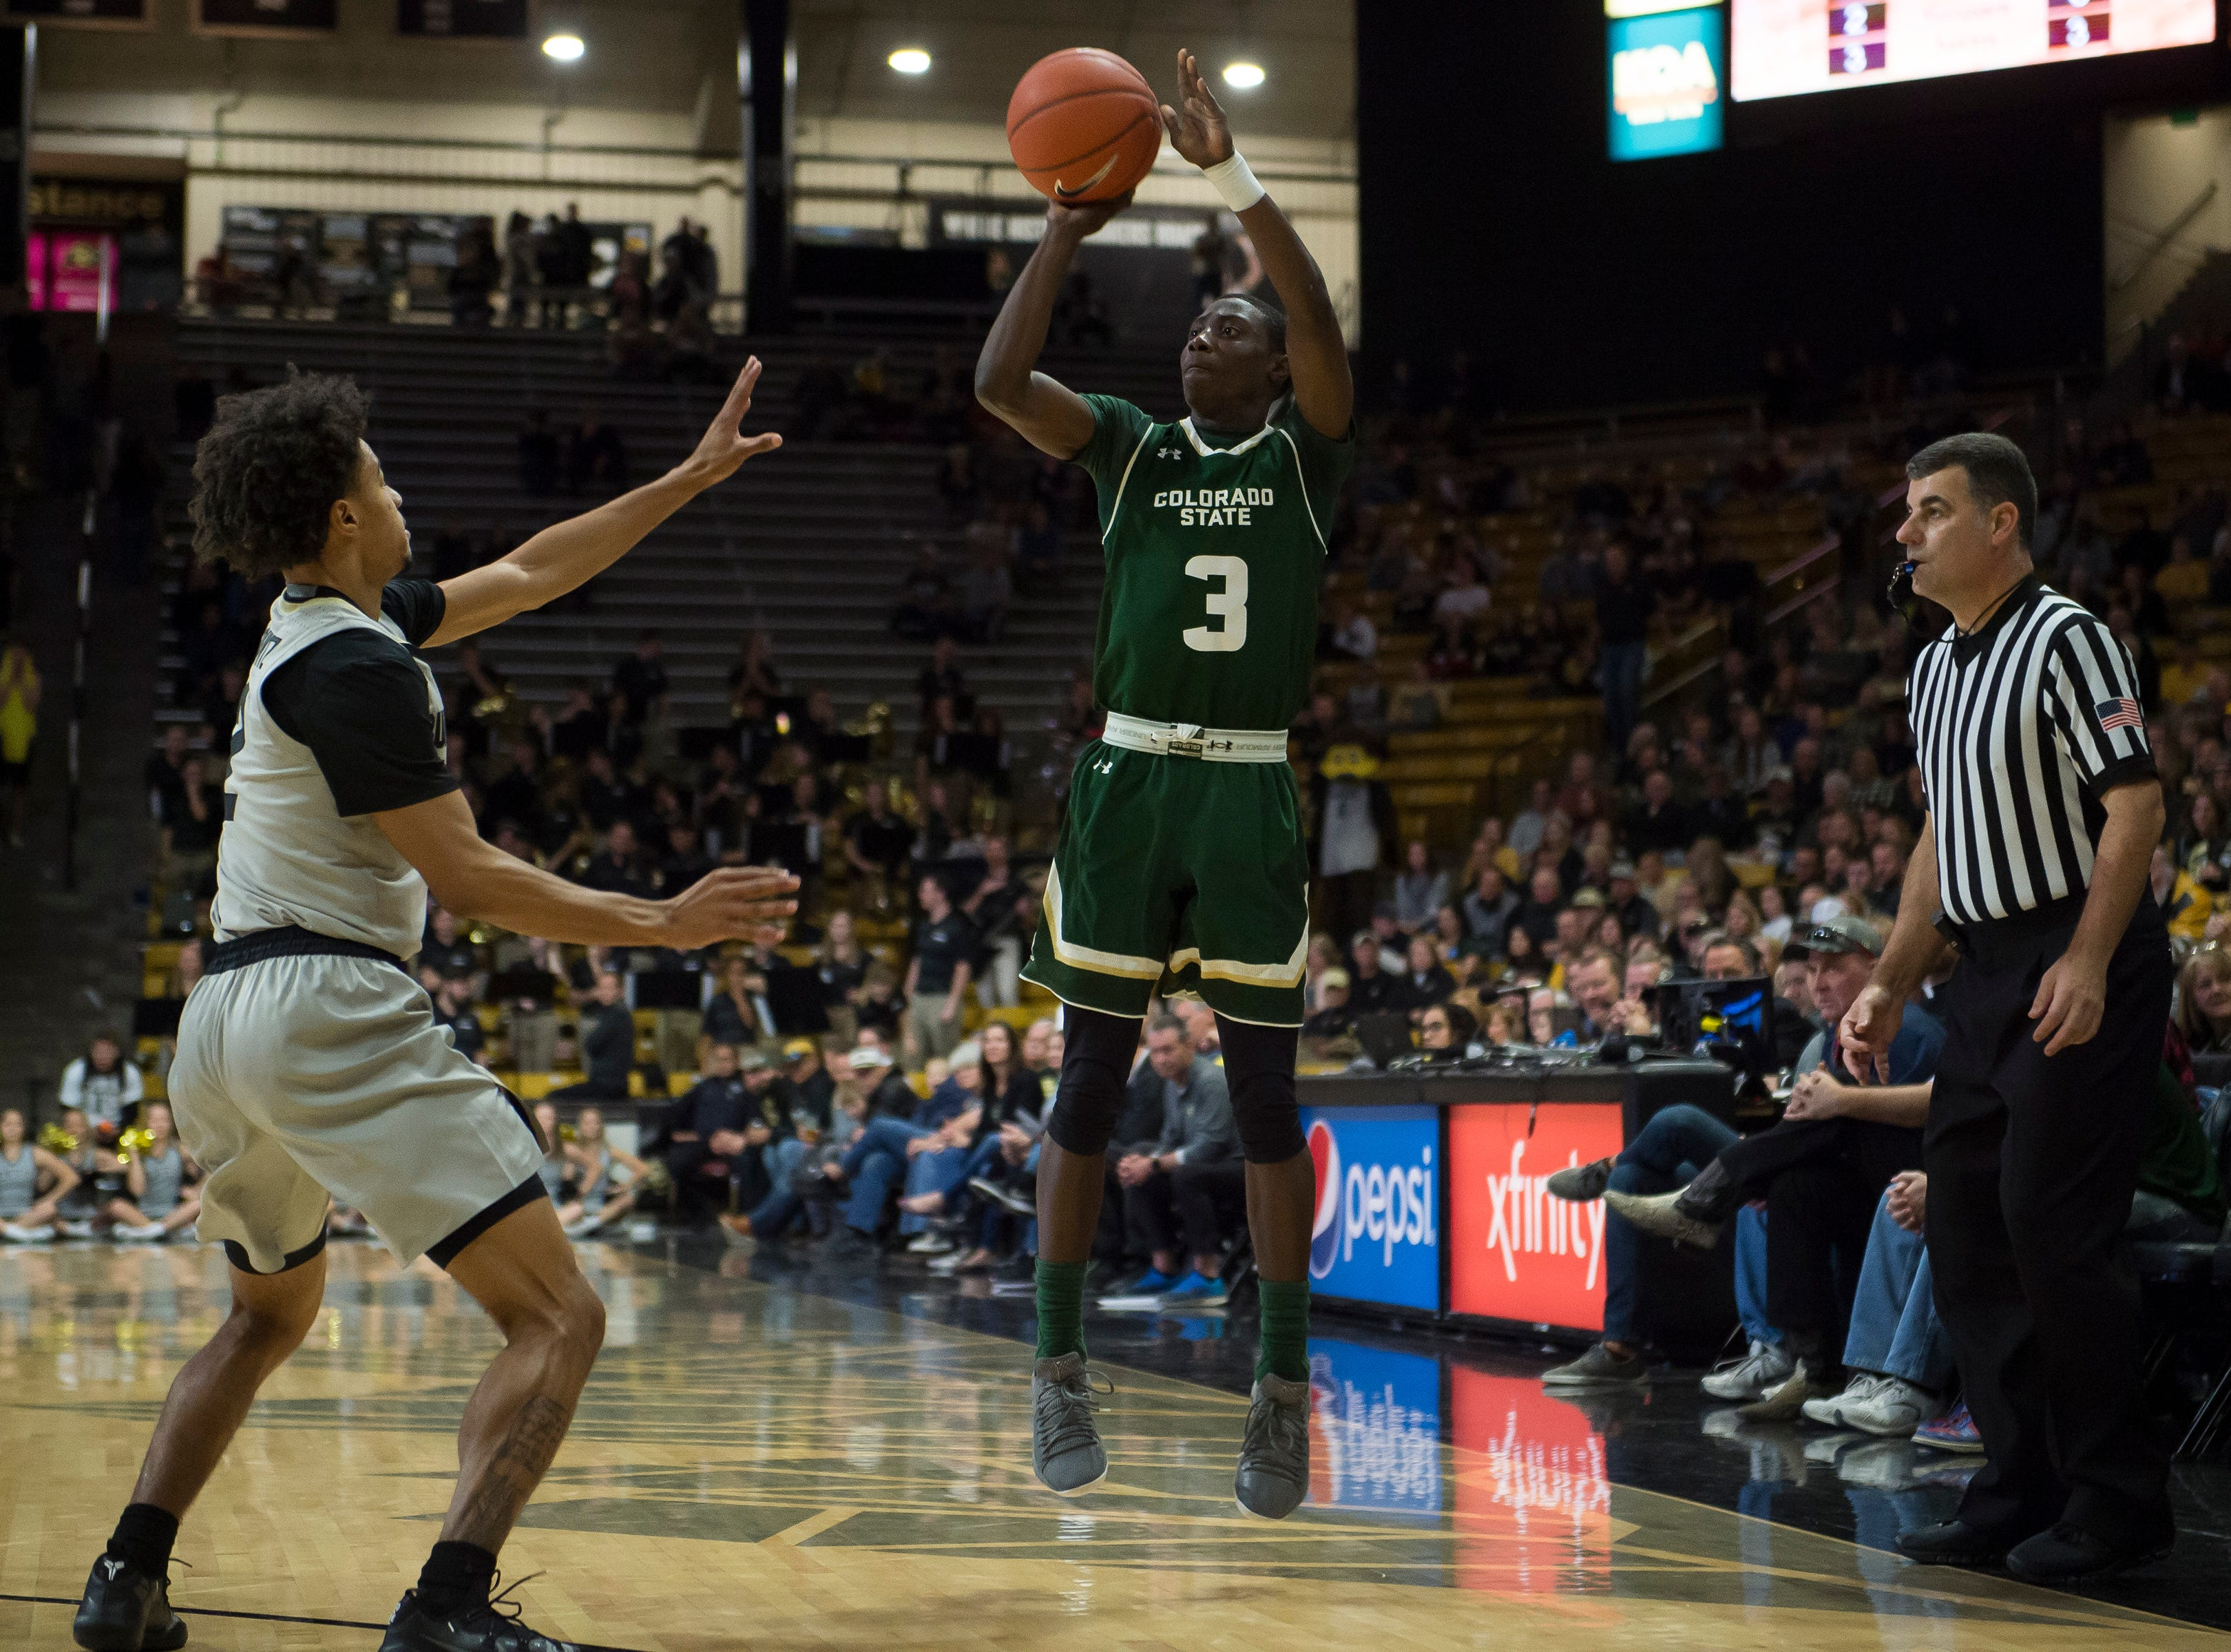 Colorado State University freshman guard Kendle Moore (3) puts up a shot during a game against the University of Colorado on Saturday, Dec. 1, 2018, at the CU Event Center in Boulder, Colo.